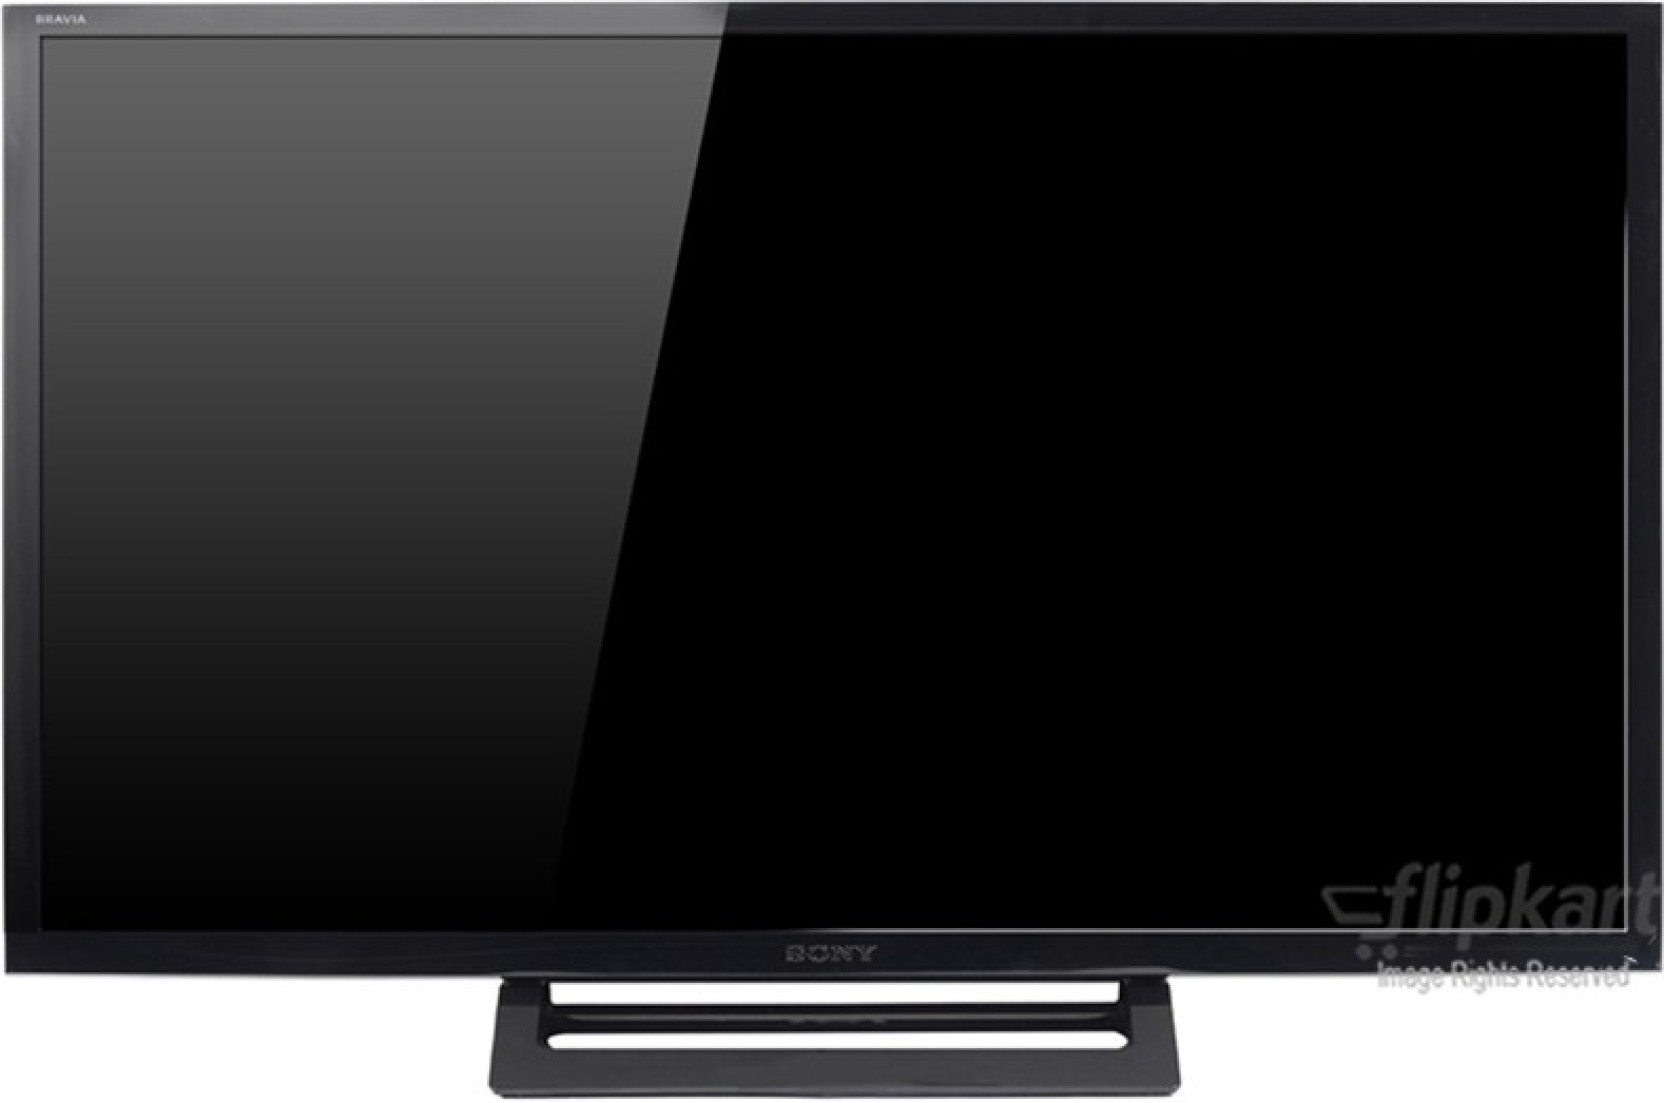 sony 80cm 31 5 inch wxga led tv online at best prices in india. Black Bedroom Furniture Sets. Home Design Ideas